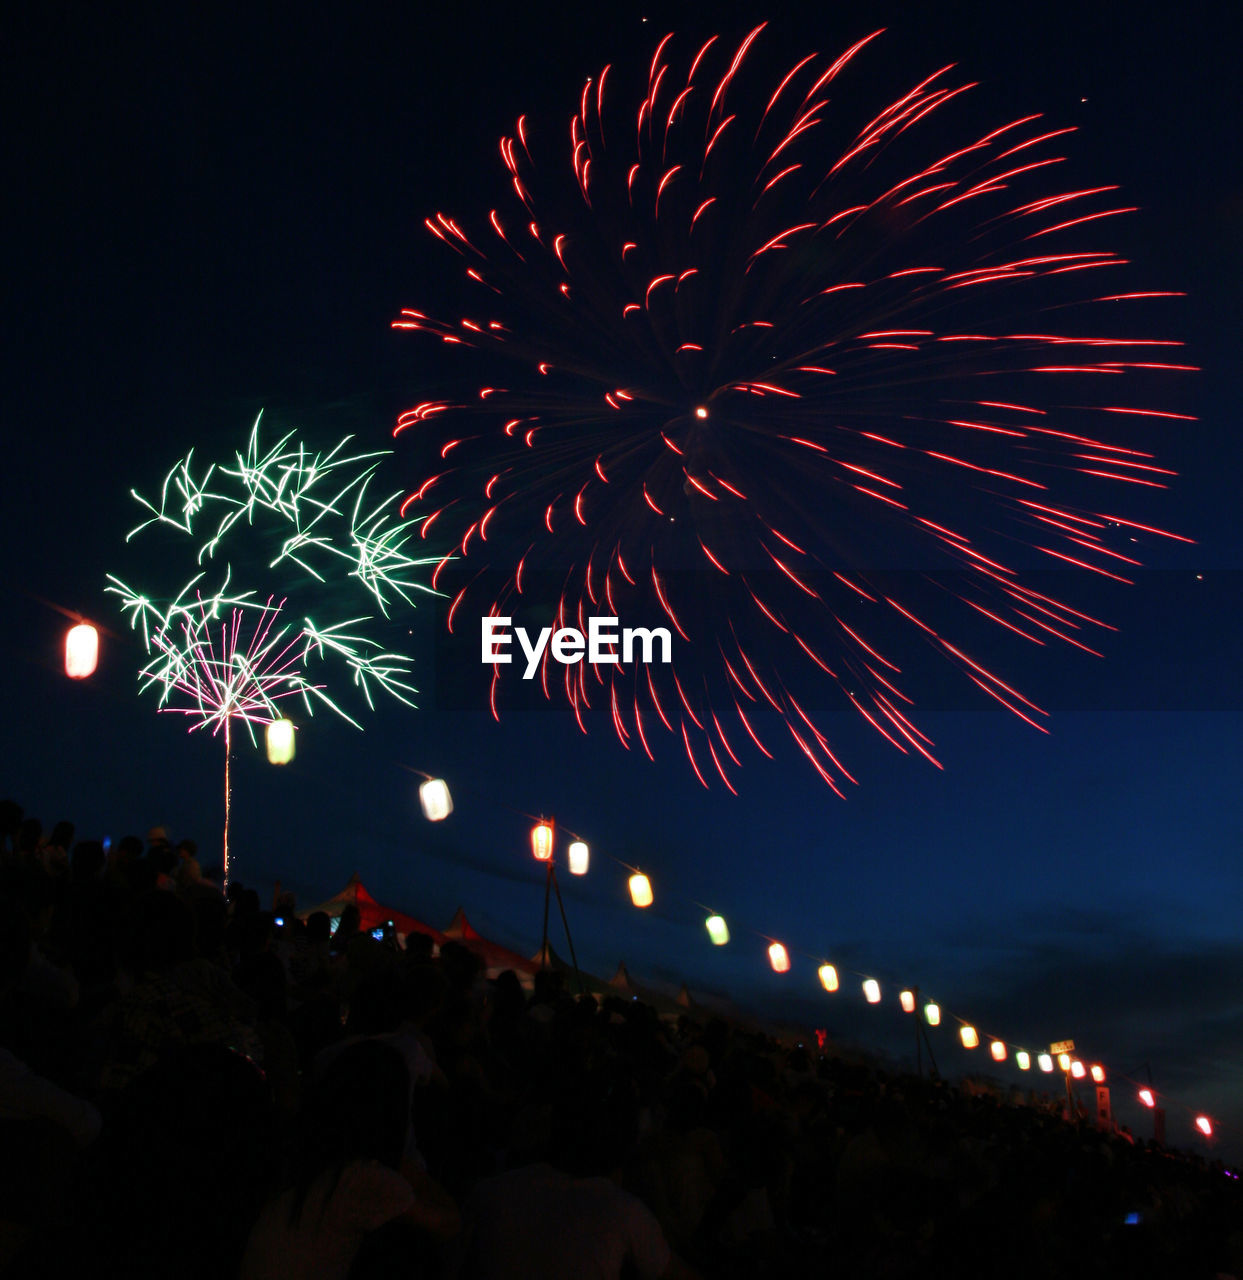 night, firework display, illuminated, celebration, firework - man made object, low angle view, event, long exposure, sky, exploding, motion, glowing, blurred motion, outdoors, arts culture and entertainment, firework, no people, clear sky